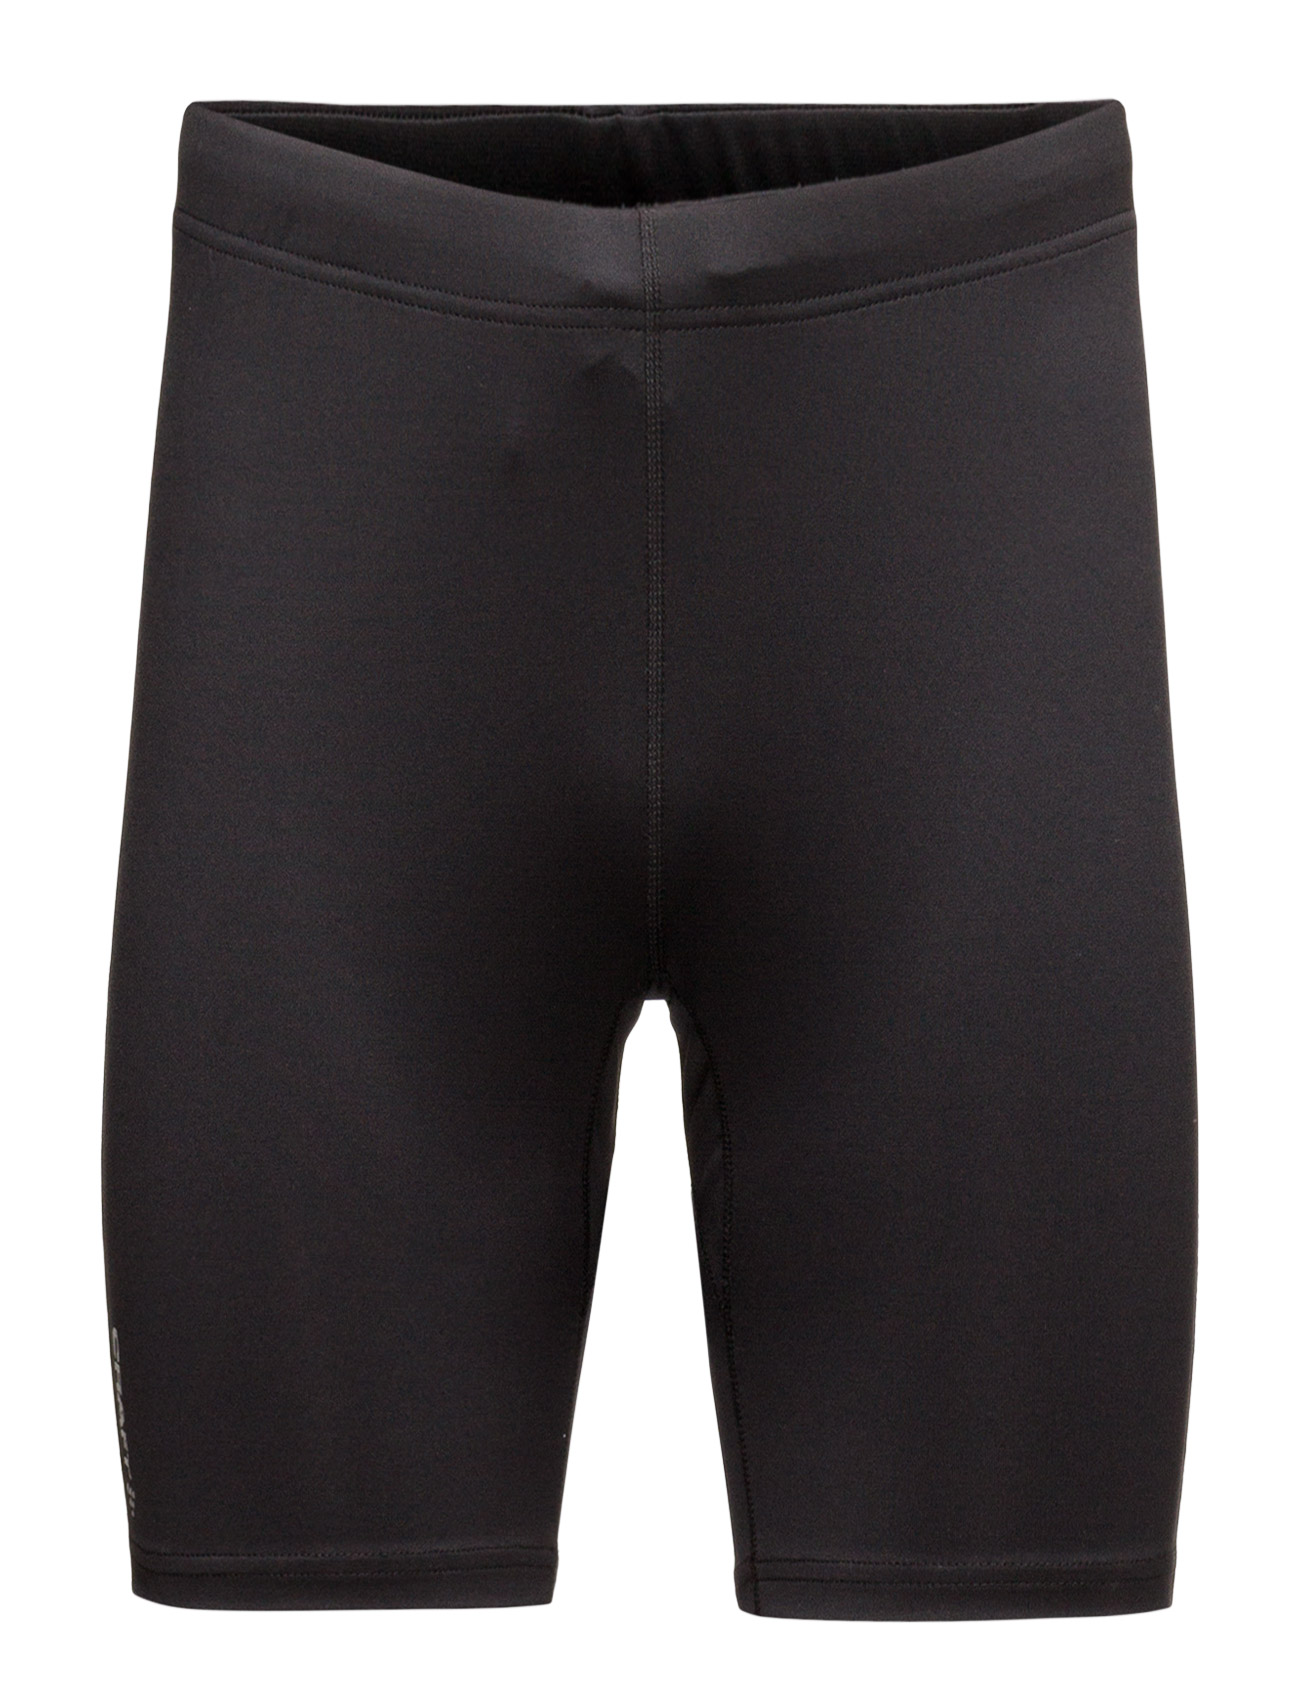 Craft Prime Short Tights M Black Craft Træningsshorts til Herrer i Sort